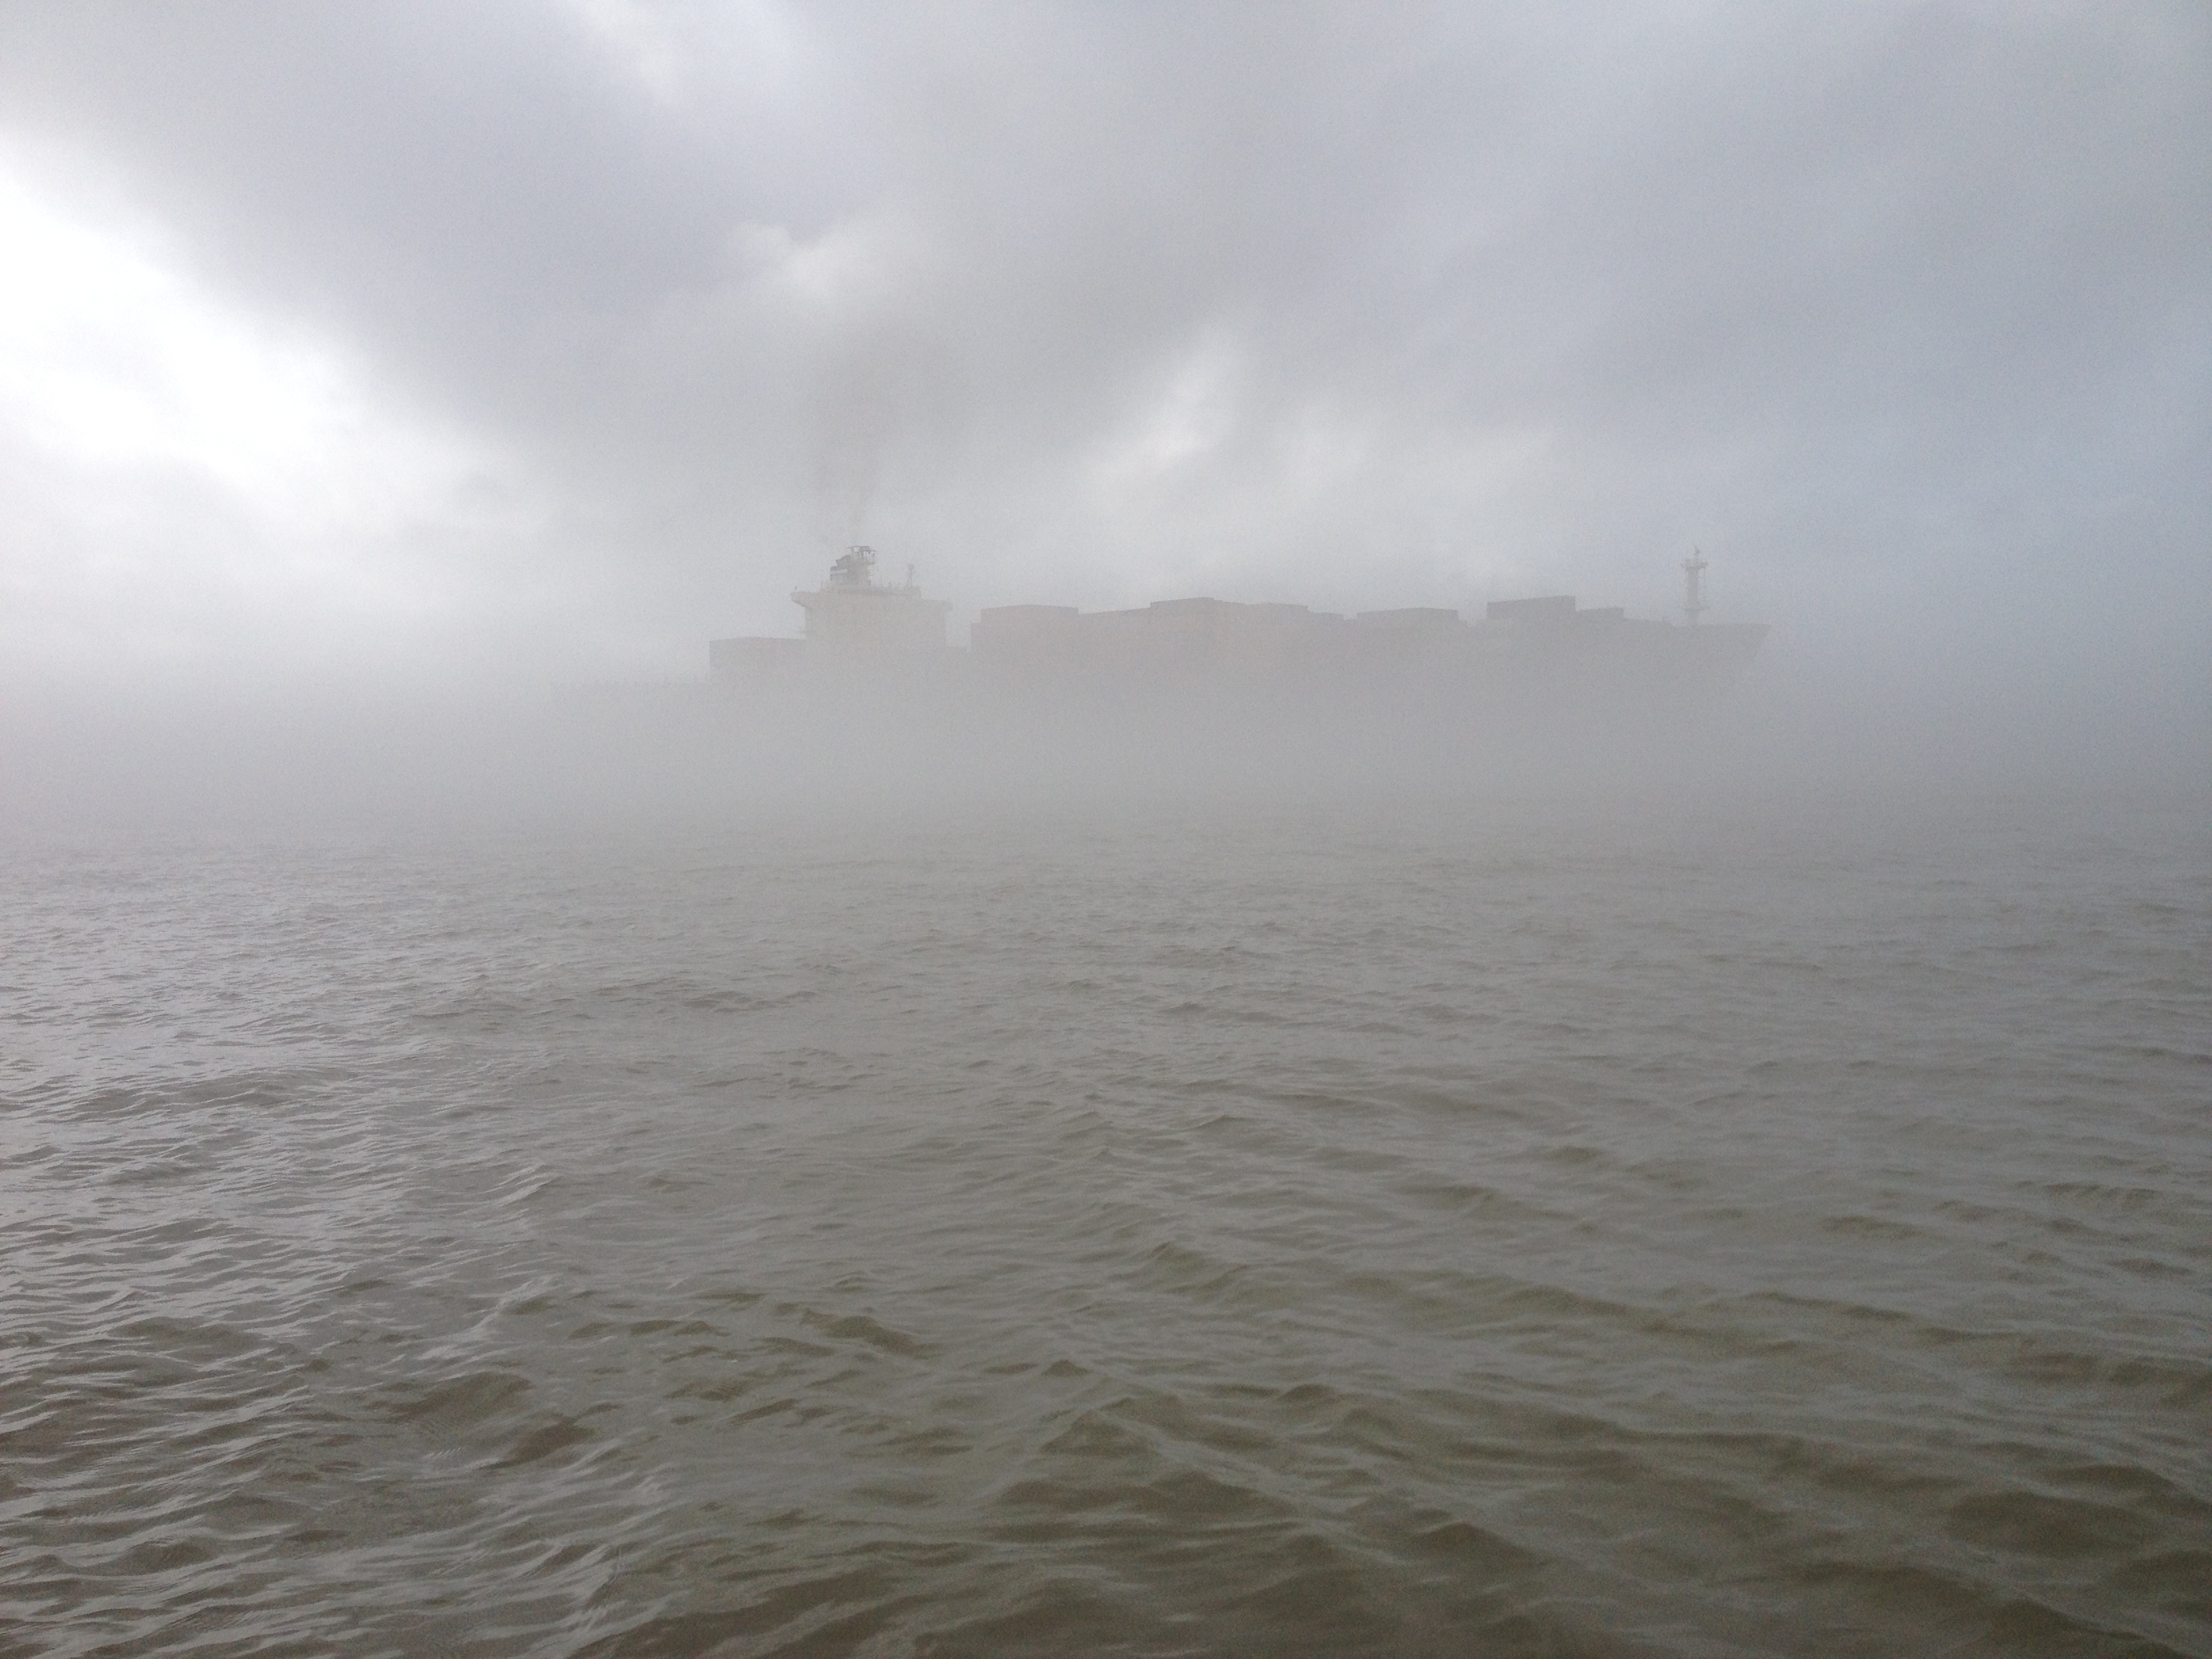 Ship approaching in the fog.